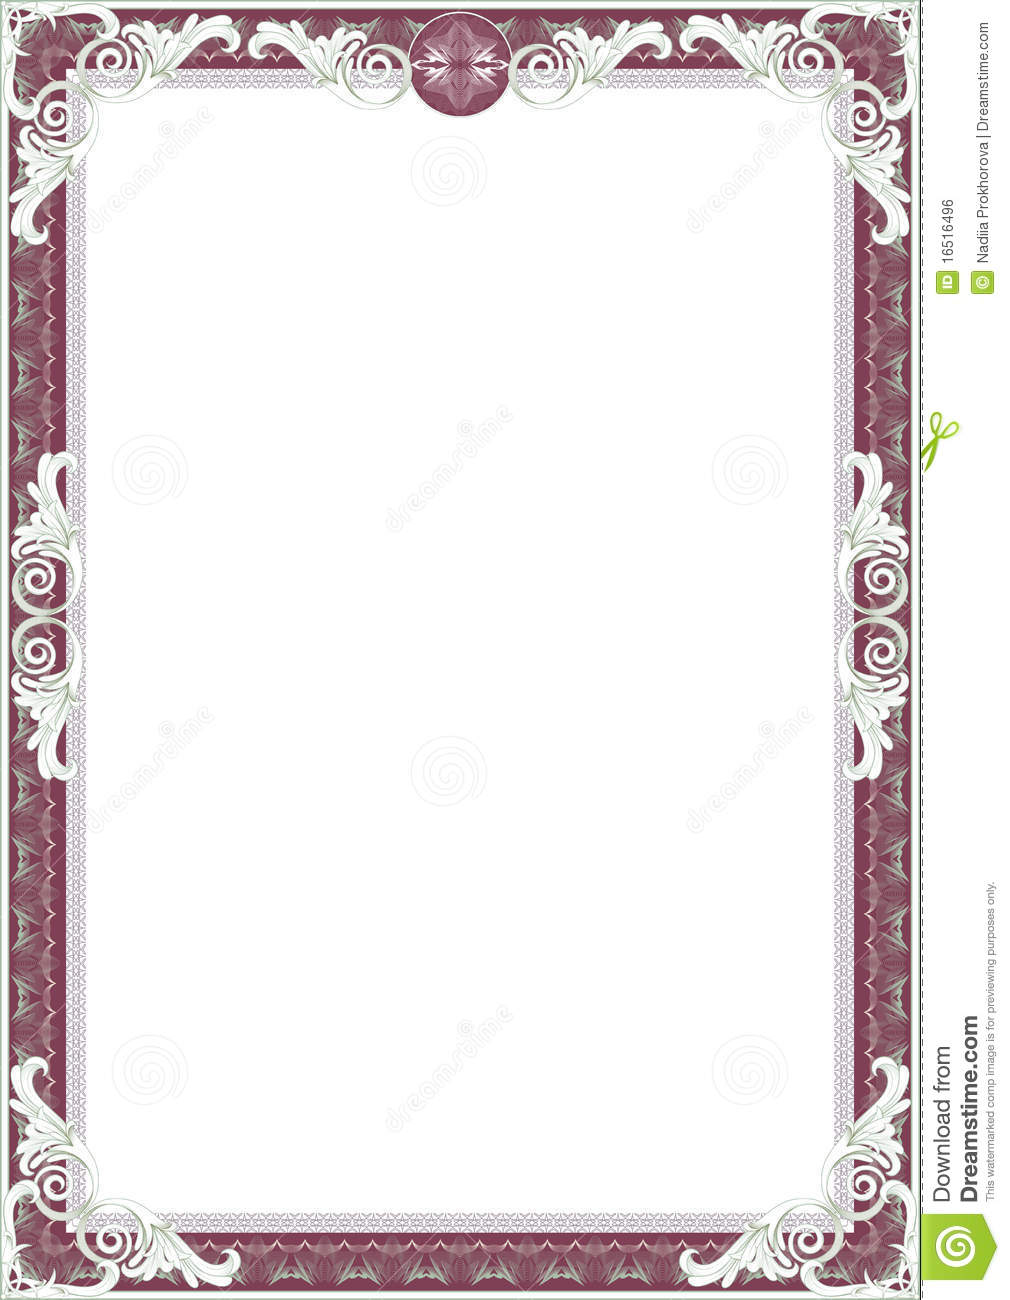 Frame For Diploma Or Certificate. Stock Illustration - Illustration ...